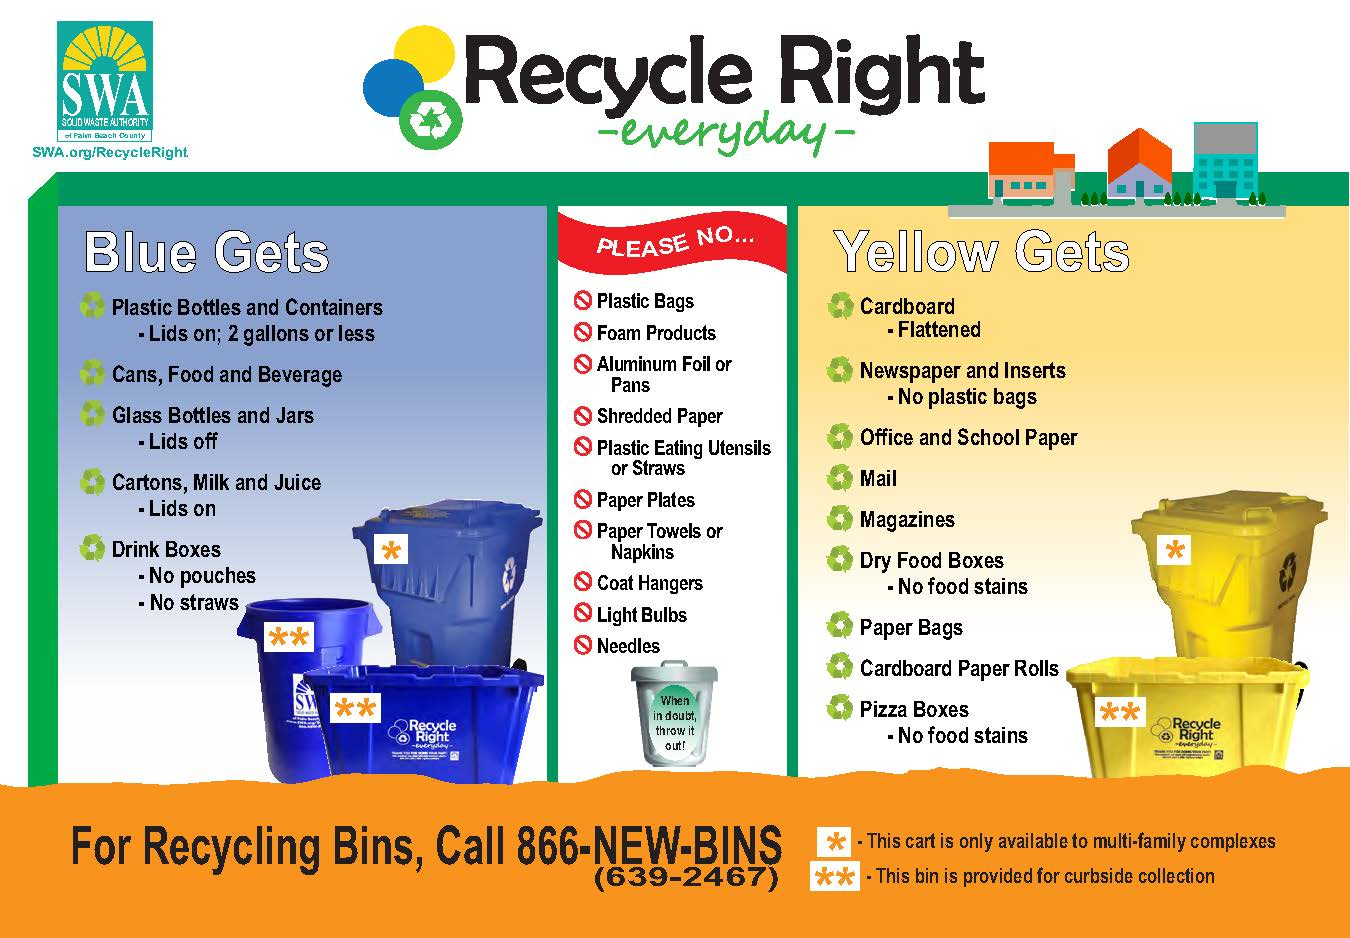 2020 Recycle Right Image for web